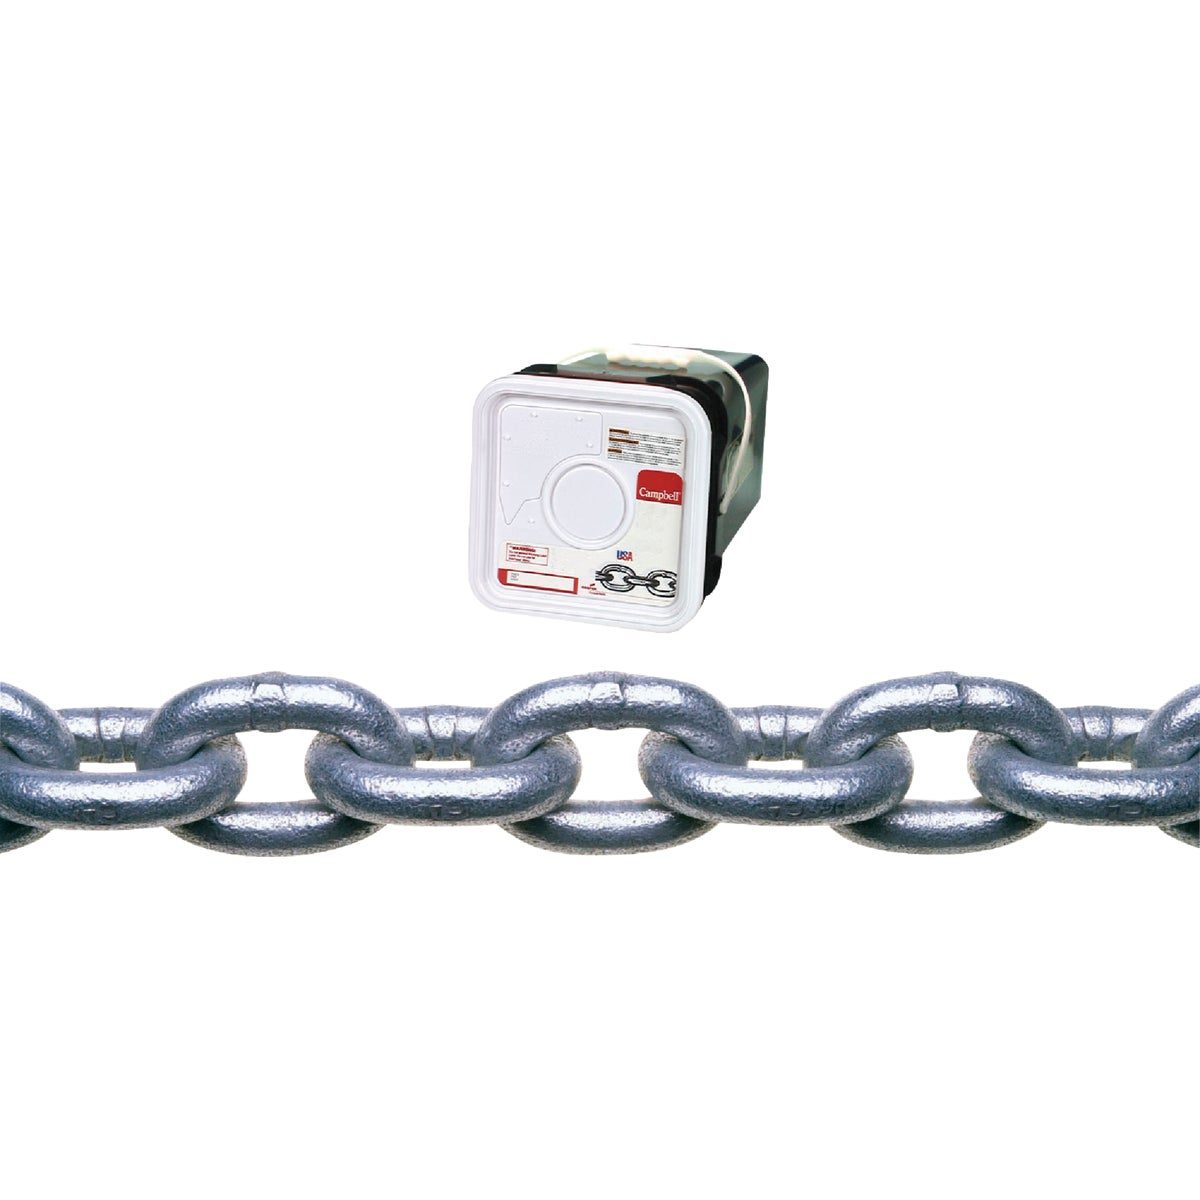 "45' 3/8"" G30 GALV CHAIN - 0143636 by Cooper Campbell Apex"